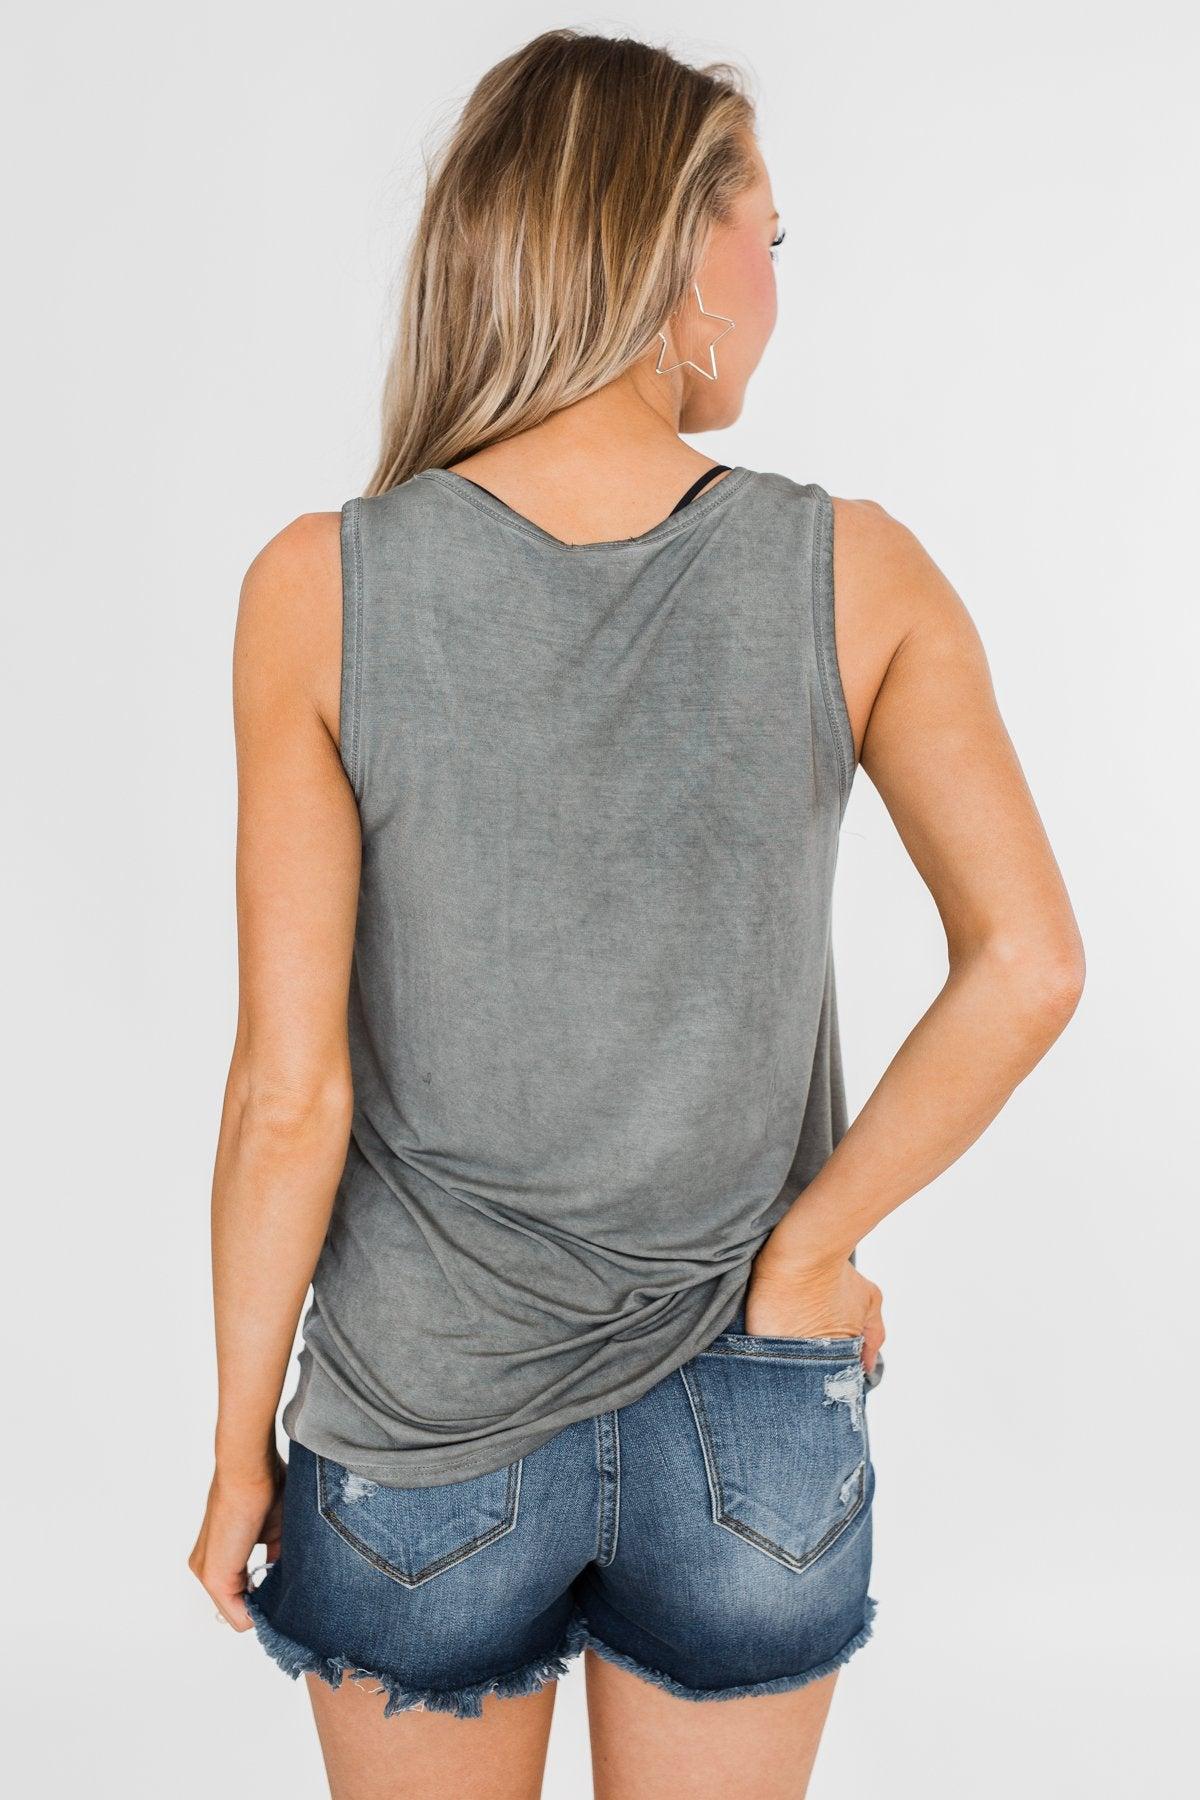 Pocketful of Color Tank Top- Vintage Grey